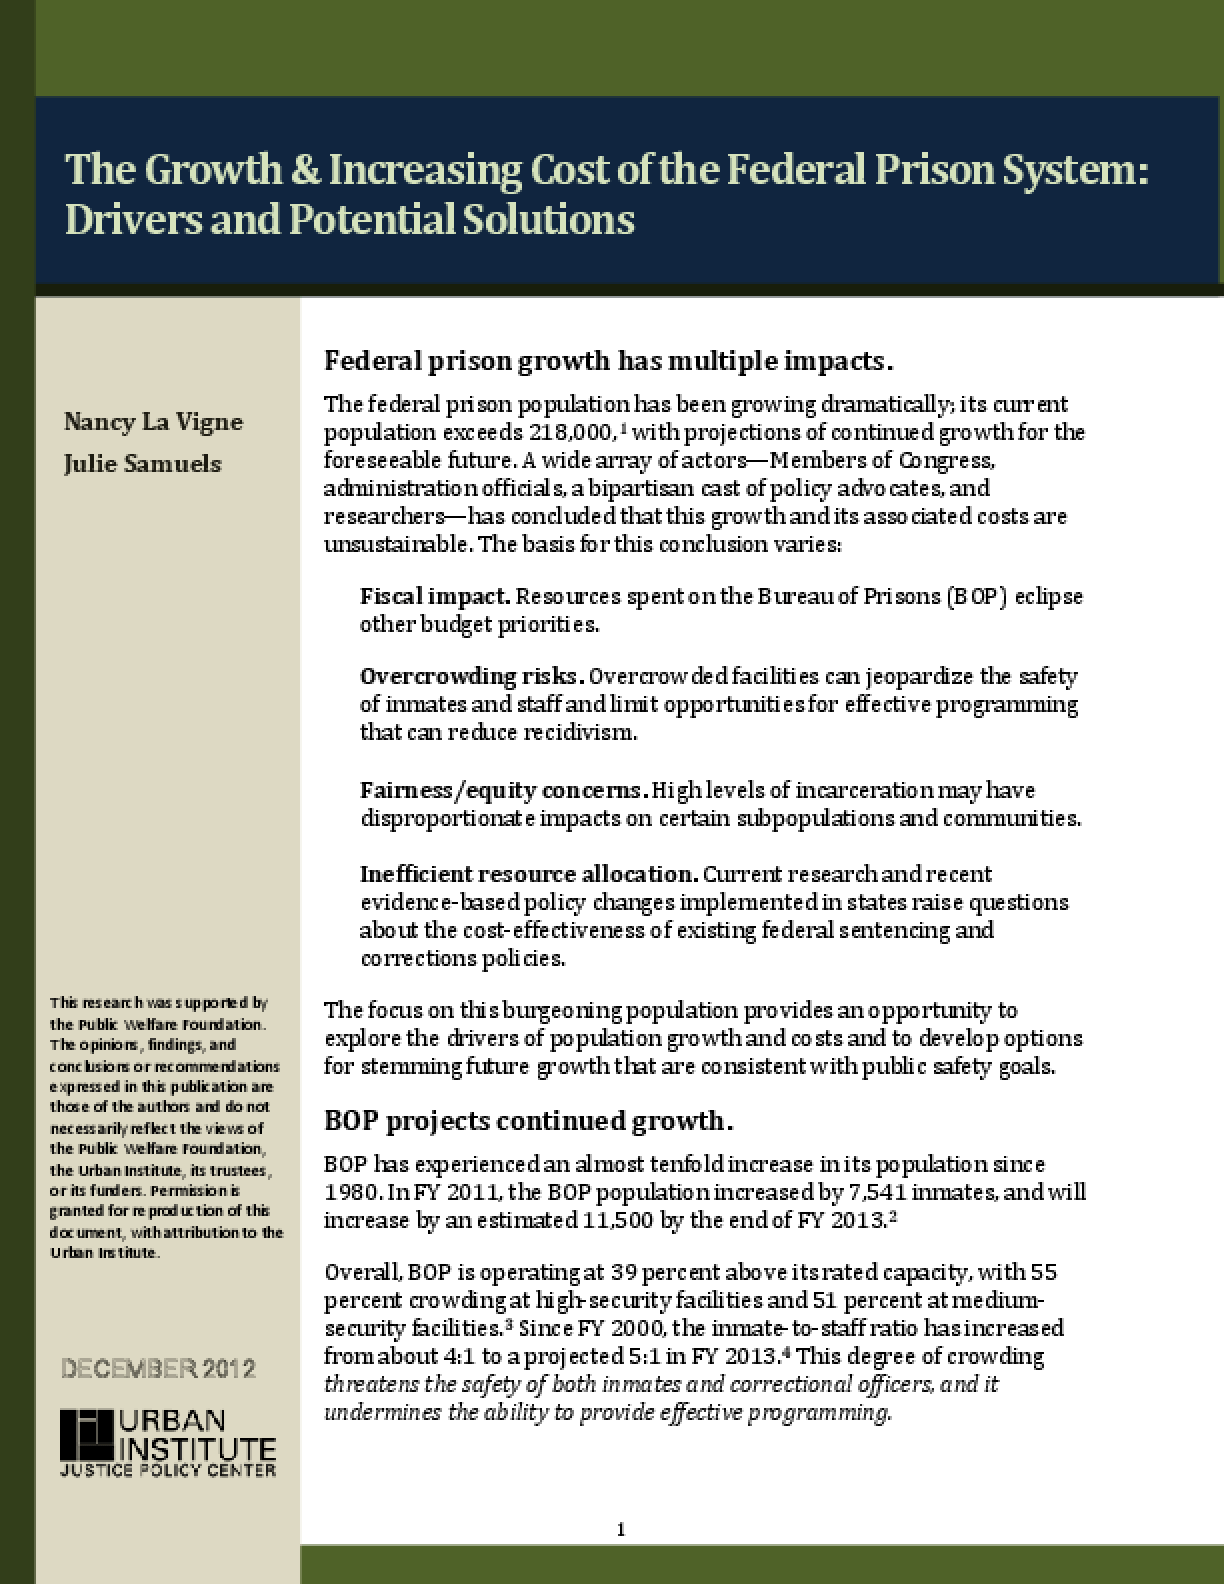 The Growth & Increasing Cost of the Federal Prison System: Drivers and Potential Solutions